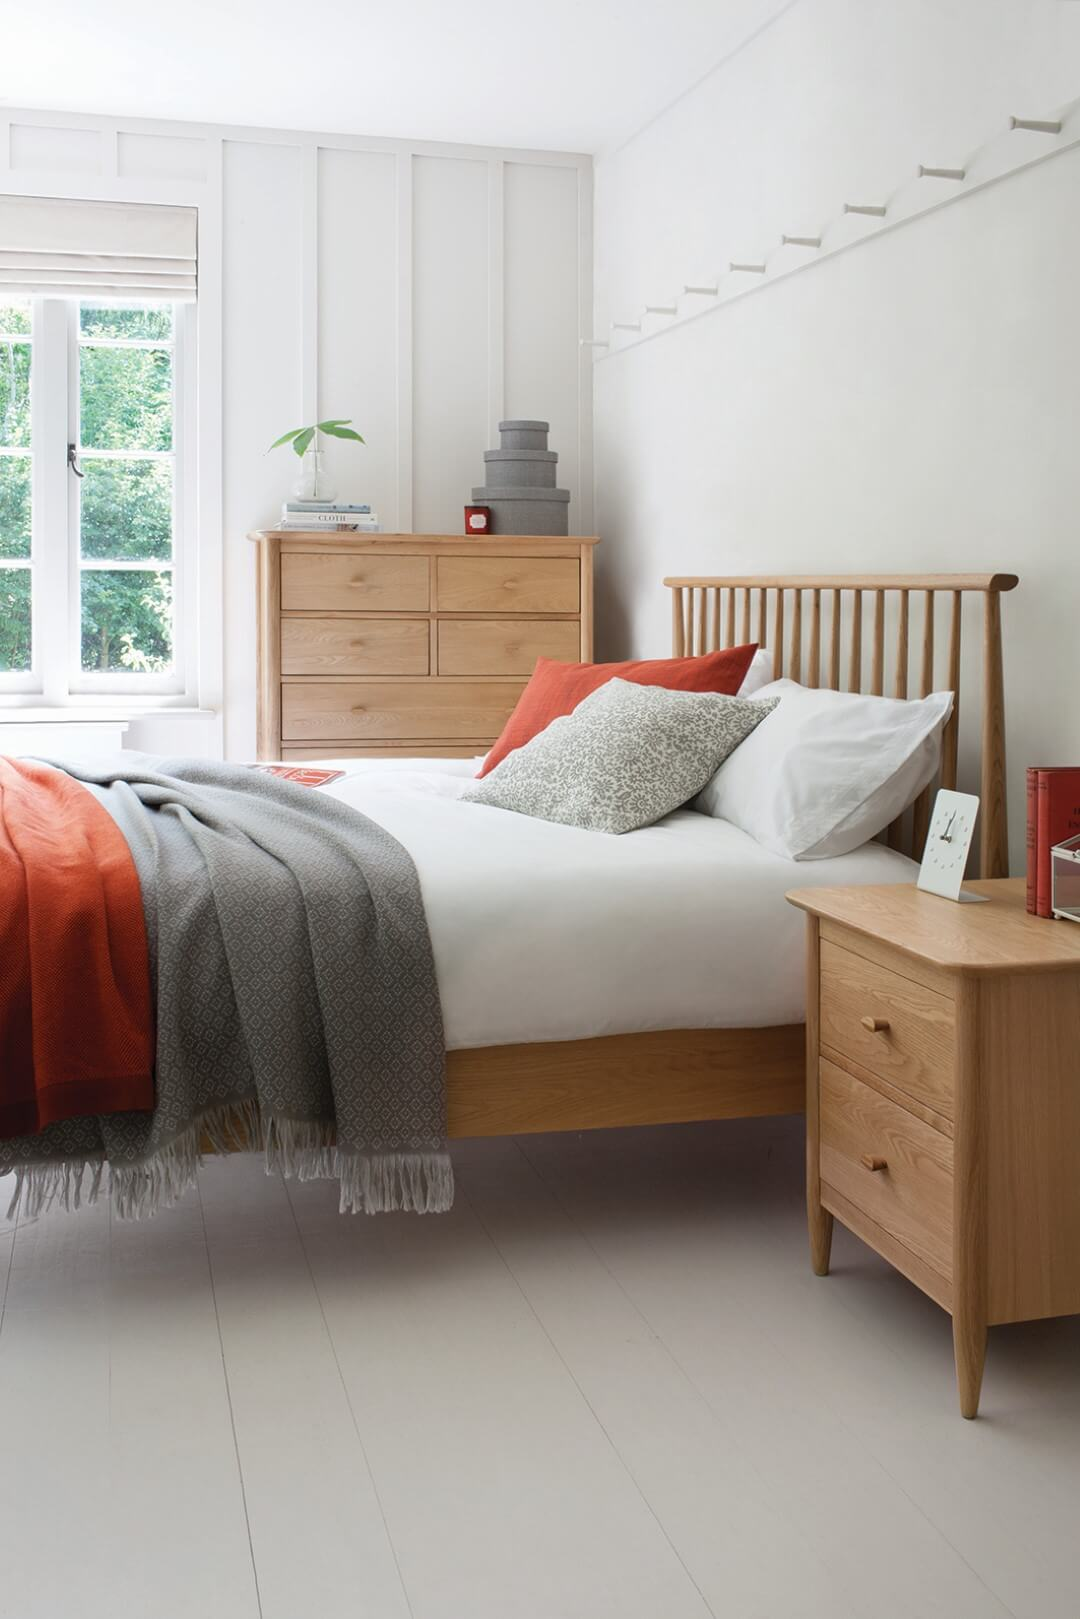 Good Form_Ercol_Teramo Bed, Drawers and Bedside Cabinet.jpg